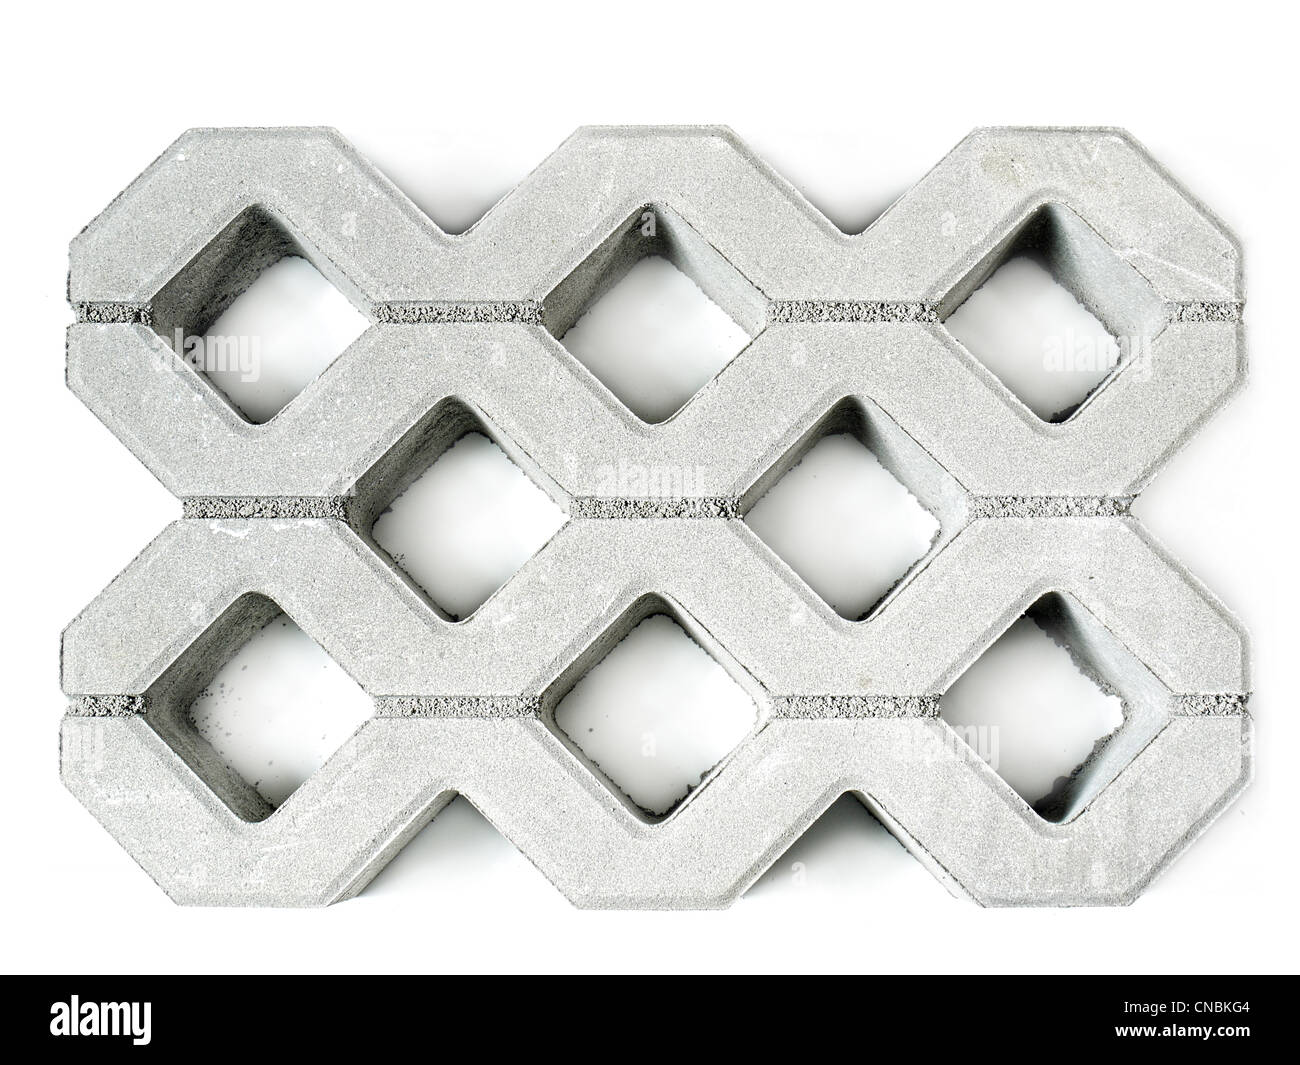 Concrete pavement block shot from above on white background - Stock Image